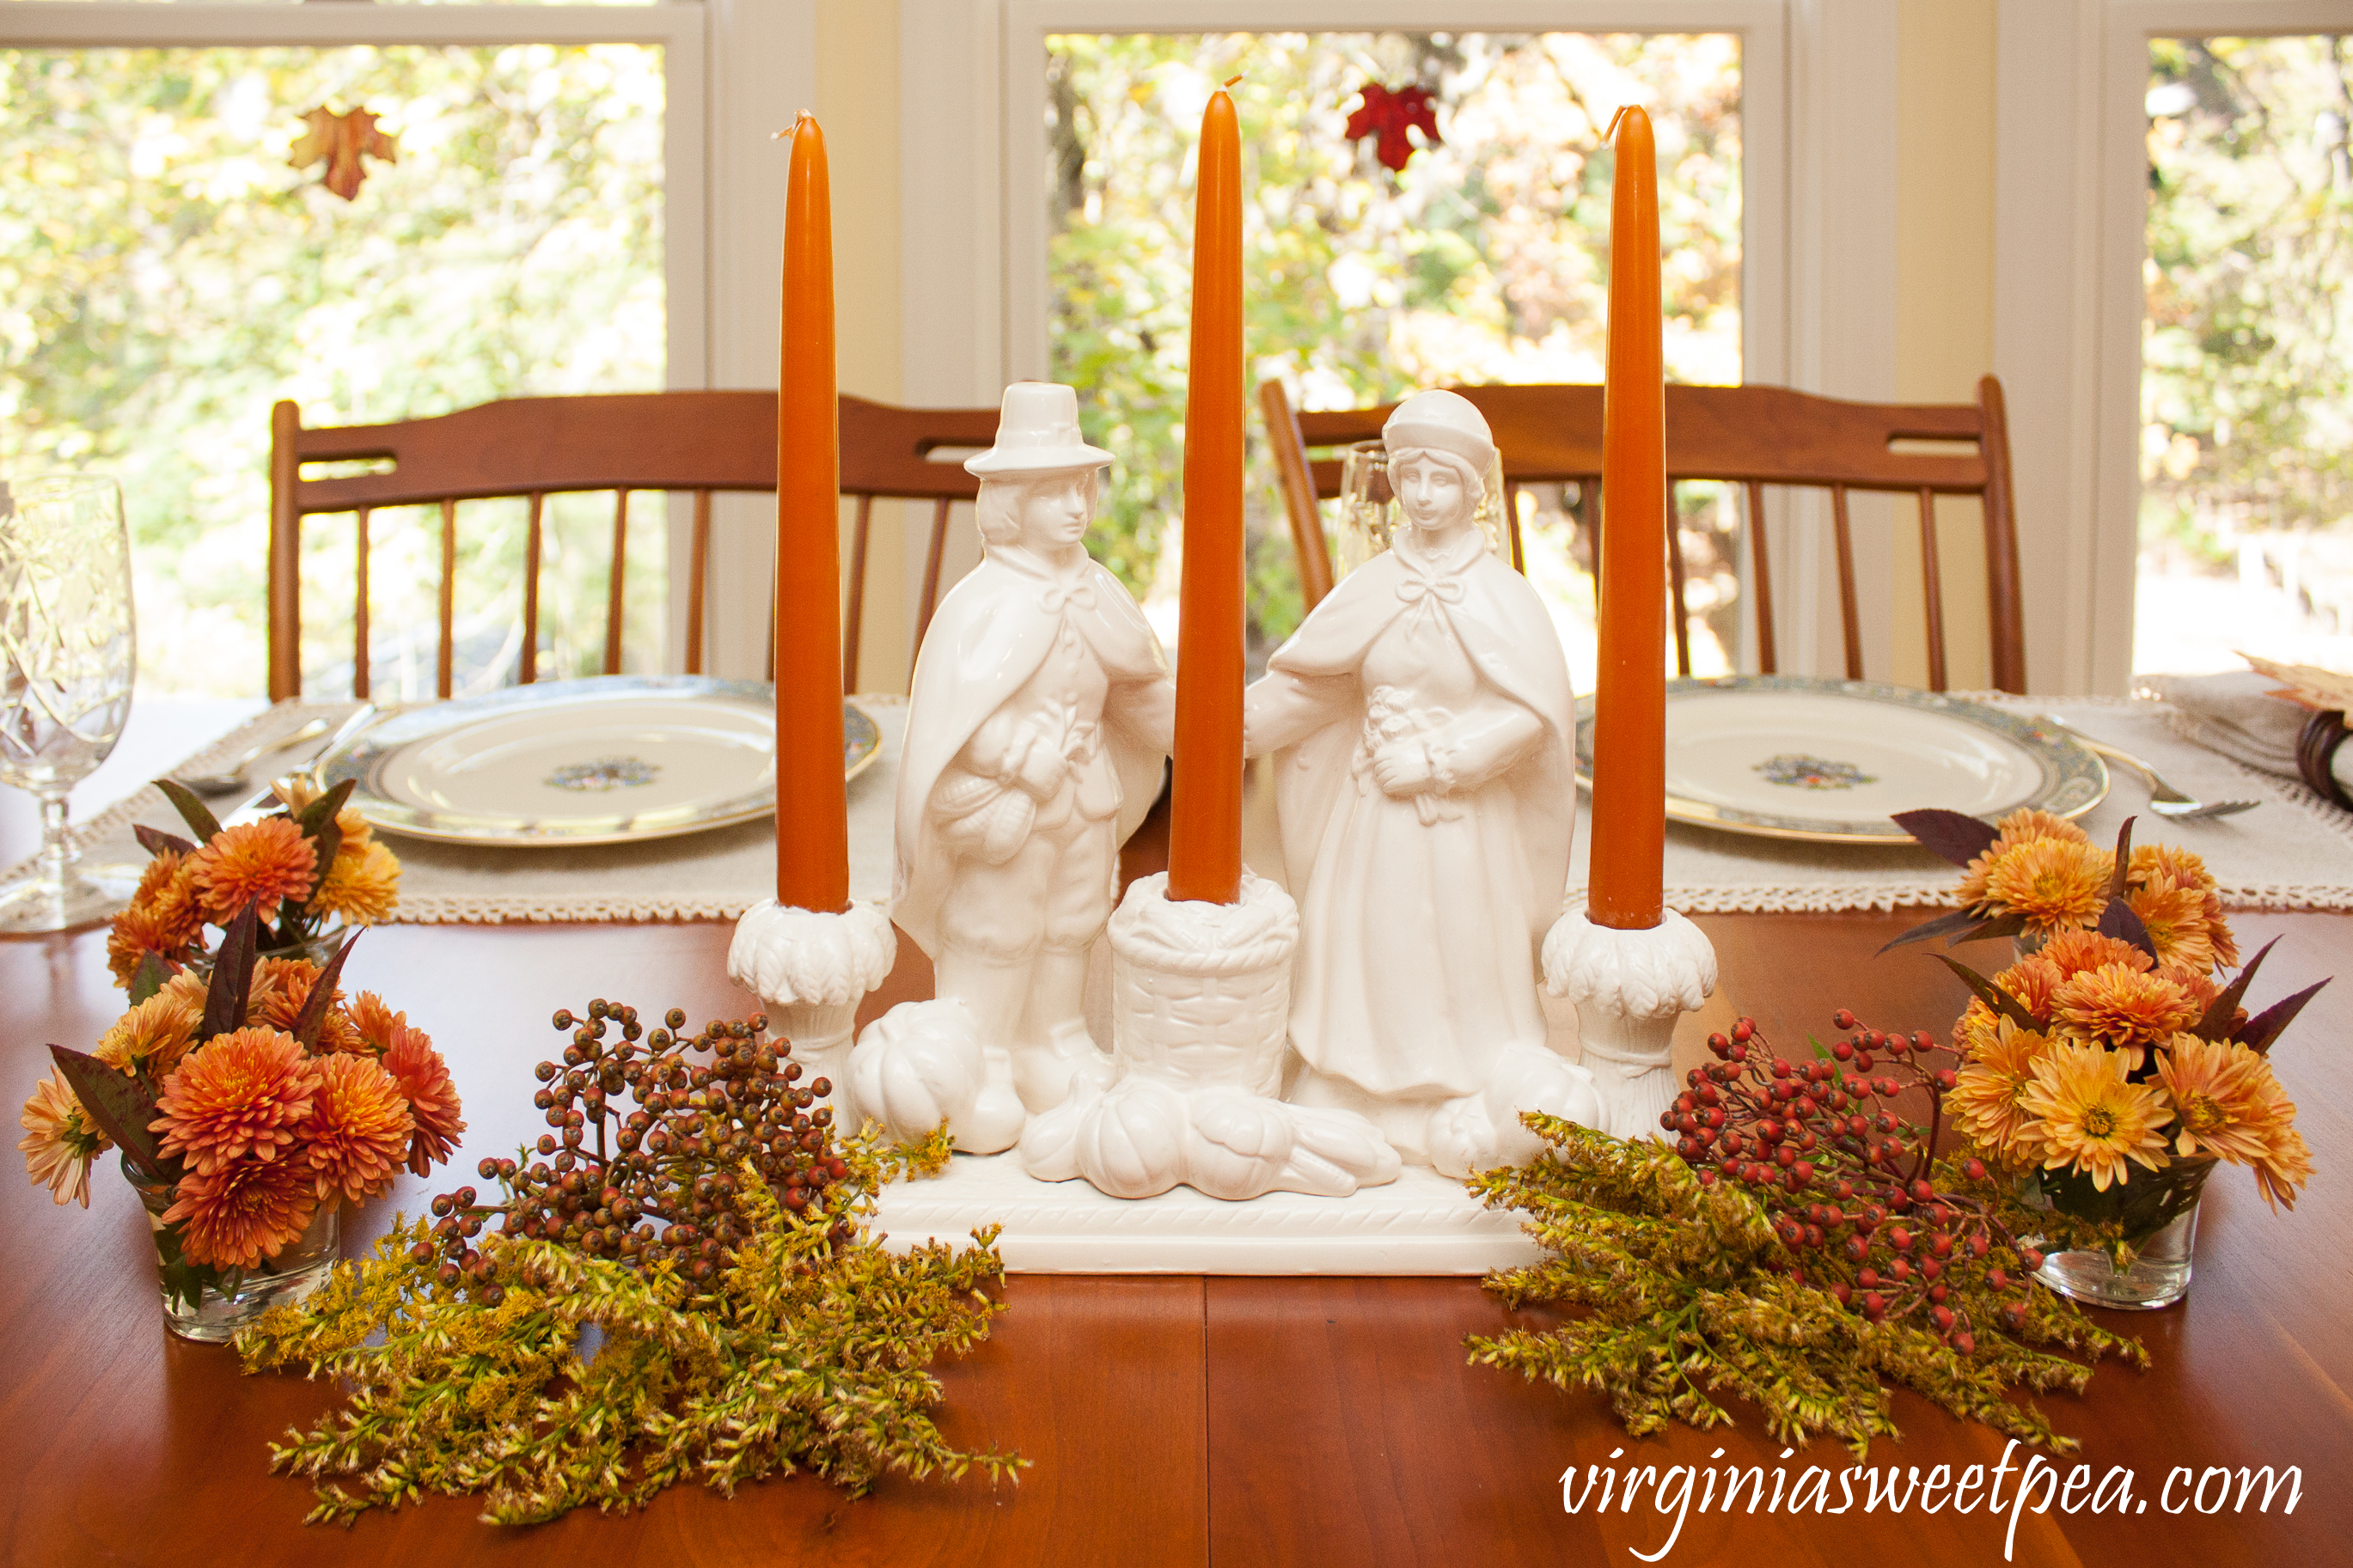 We Gather Together Thanksgiving Table - Get ideas for setting your table for Thanksgiving from 20+ bloggers. #thanksgivingcenterpiece #thanksgiving #vintagepilgrims #thanksgivingtablescape